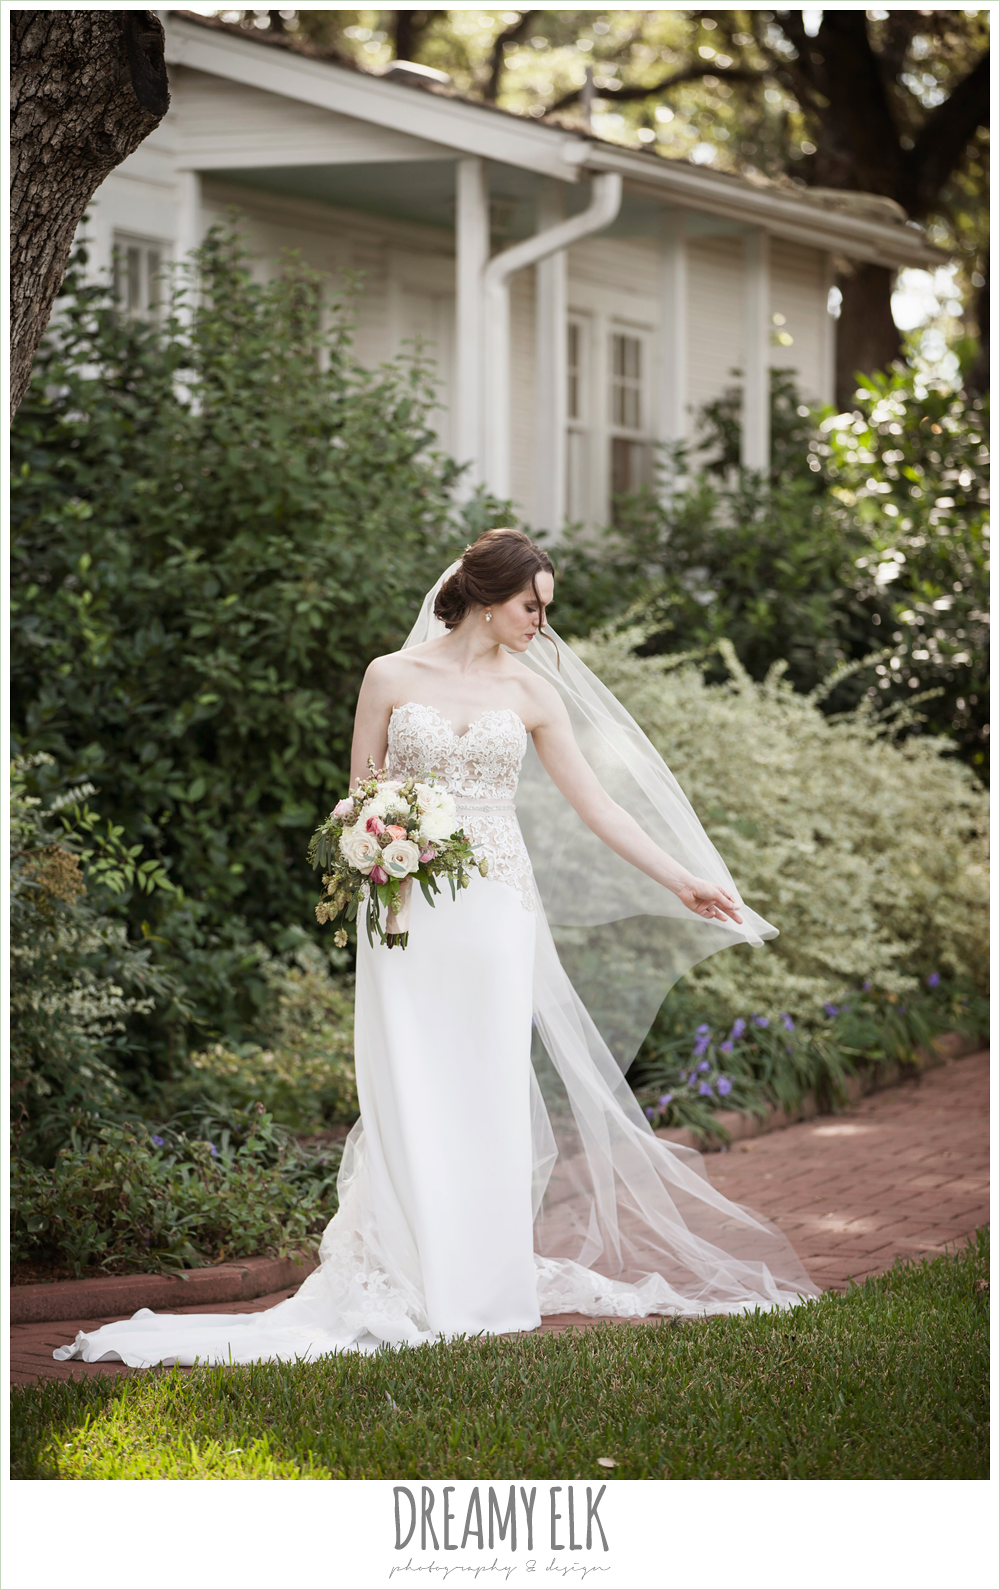 cathedral length lace veil, sweetheart strapless two tone wedding dress, bouquets of austin, the winfield inn, summer wedding photo {dreamy elk photography and design}